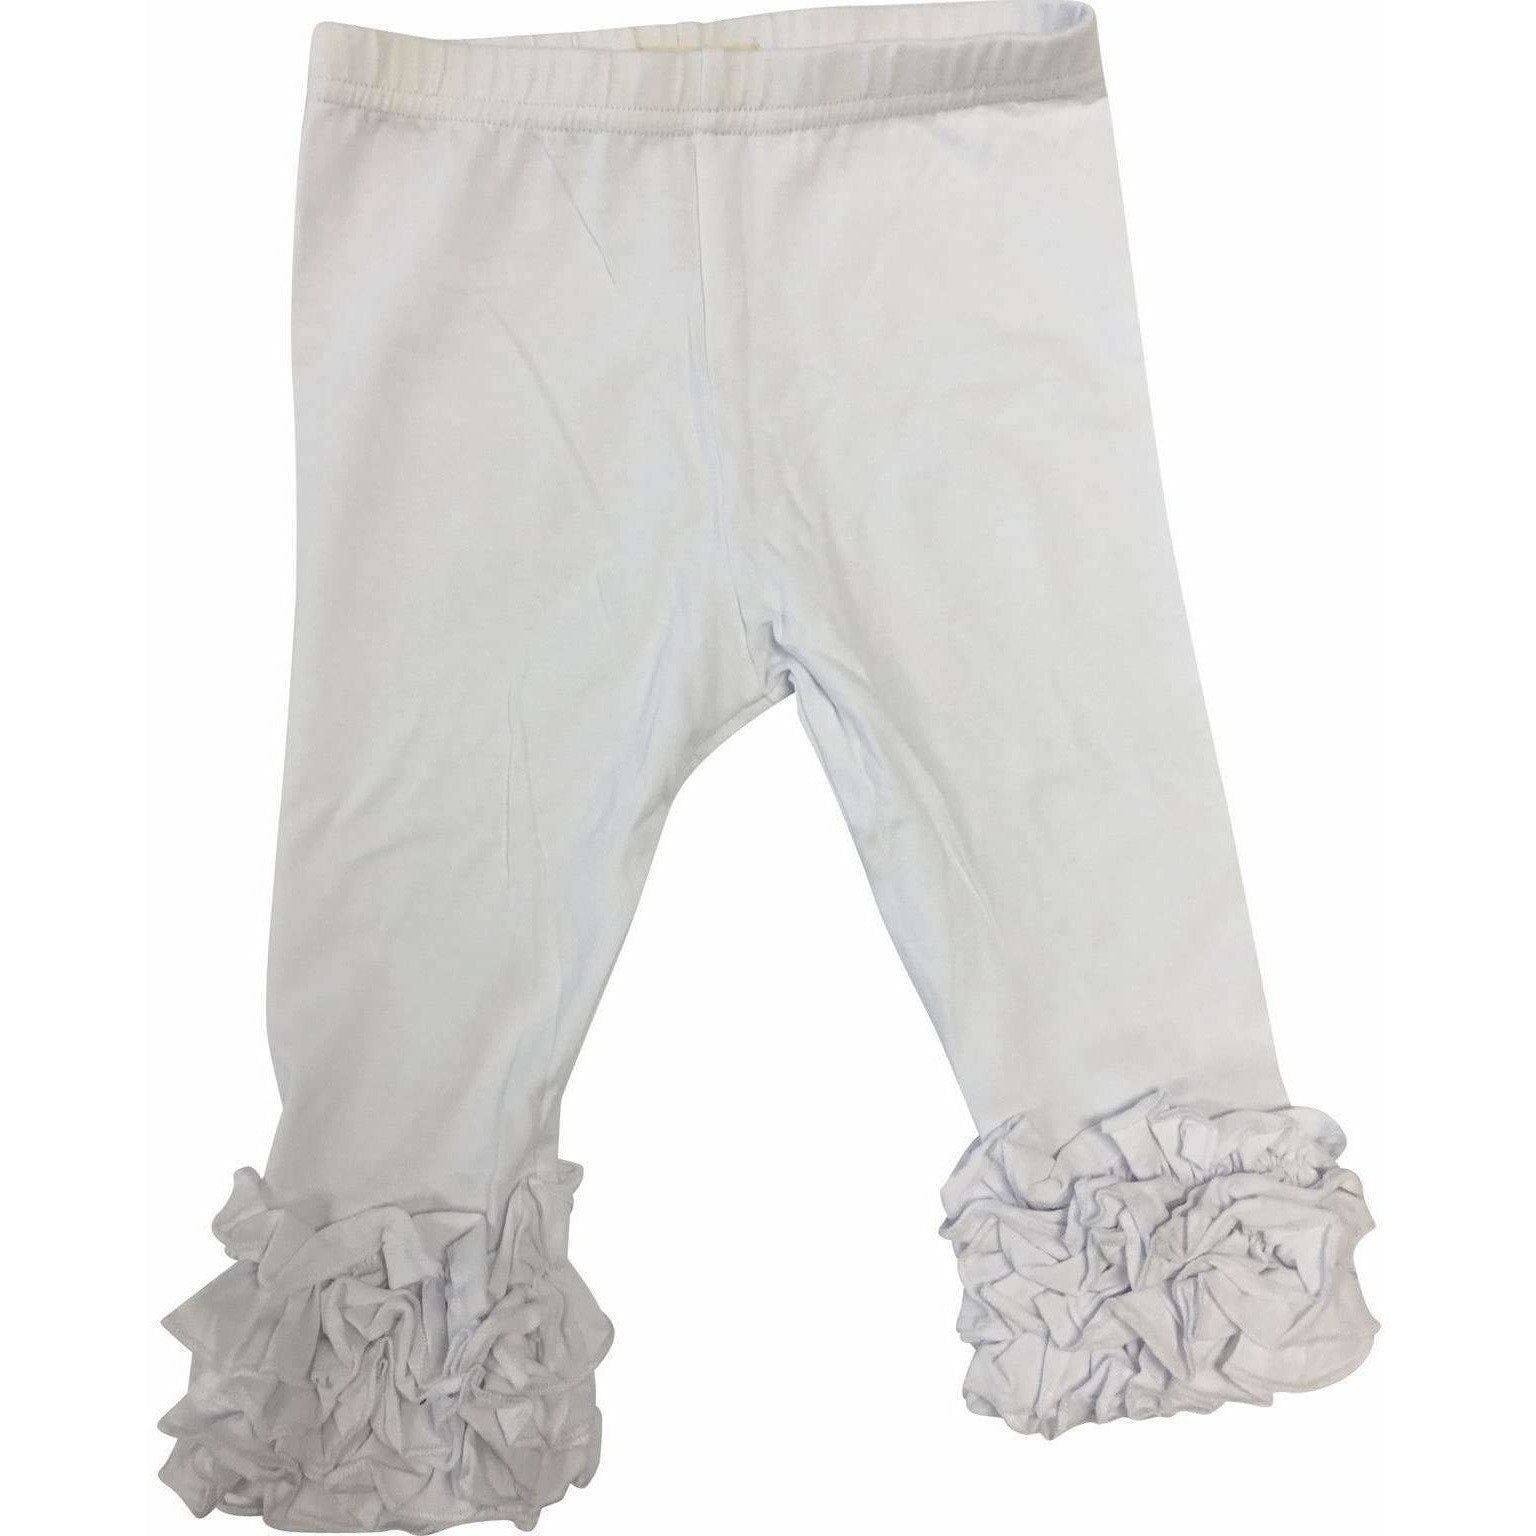 Icing Capri Size 2 - Adorable Essentials